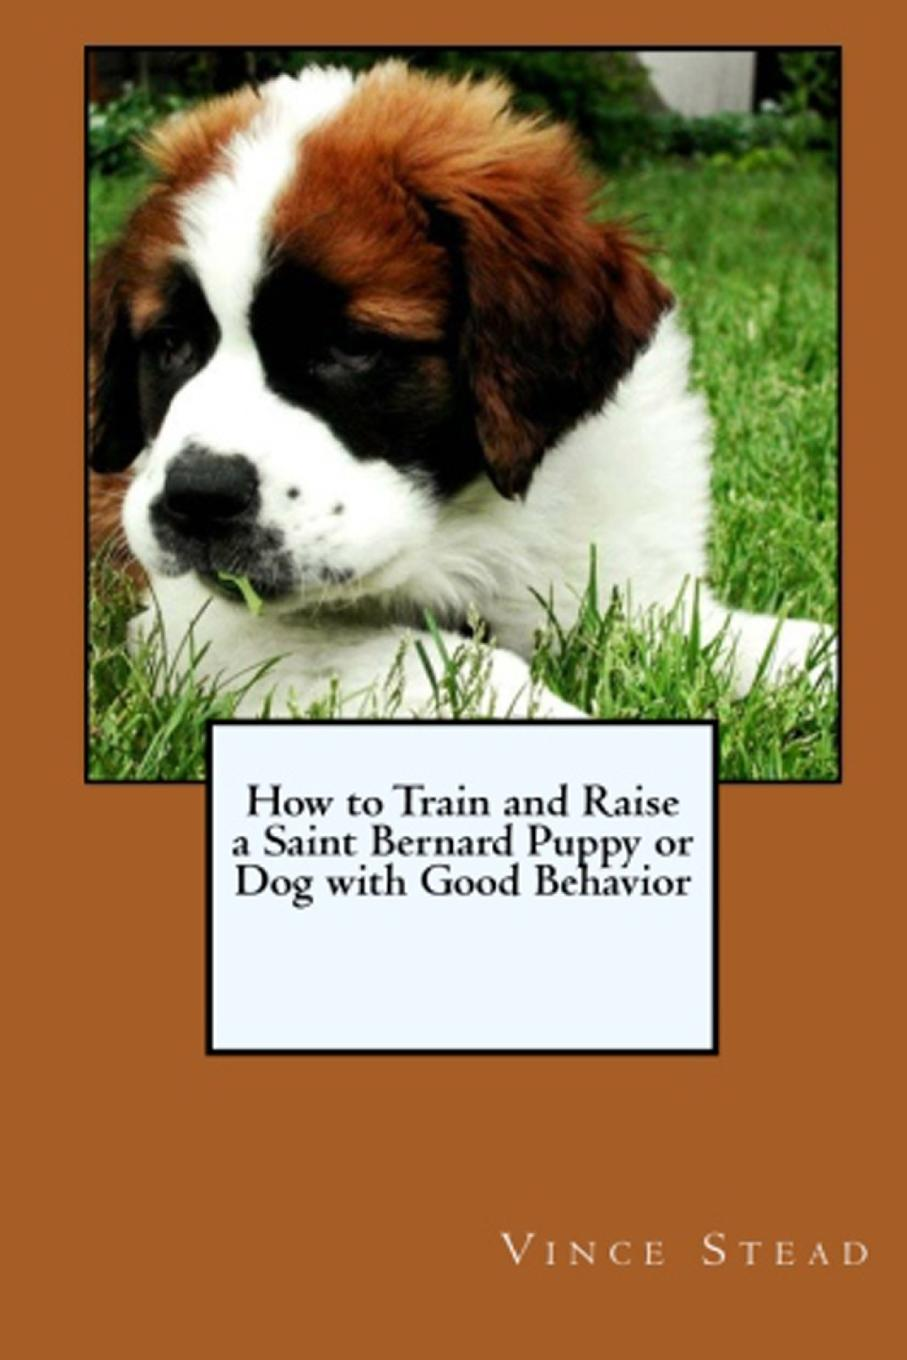 Vince Stead How to Train and Raise a Saint Bernard Puppy or Dog with Good Behavior